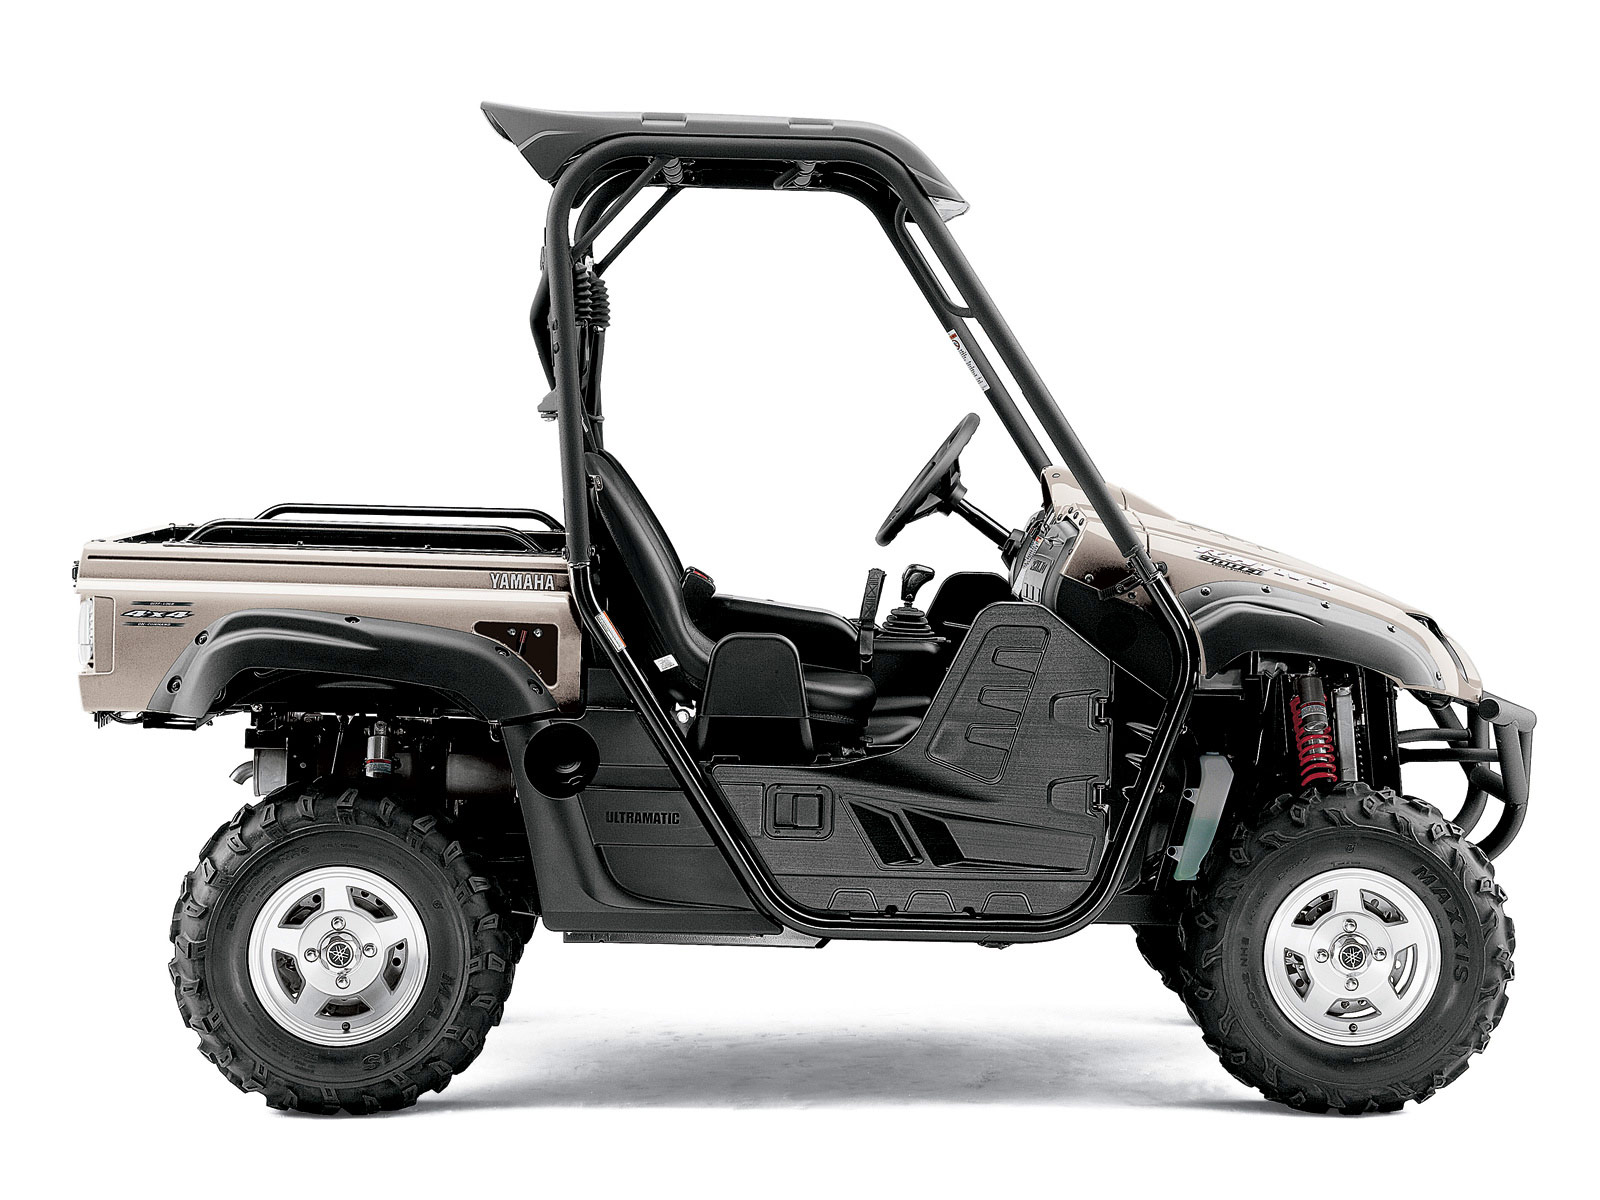 2012 yamaha rhino 700 fi auto 4x4 sport edition deluxe review